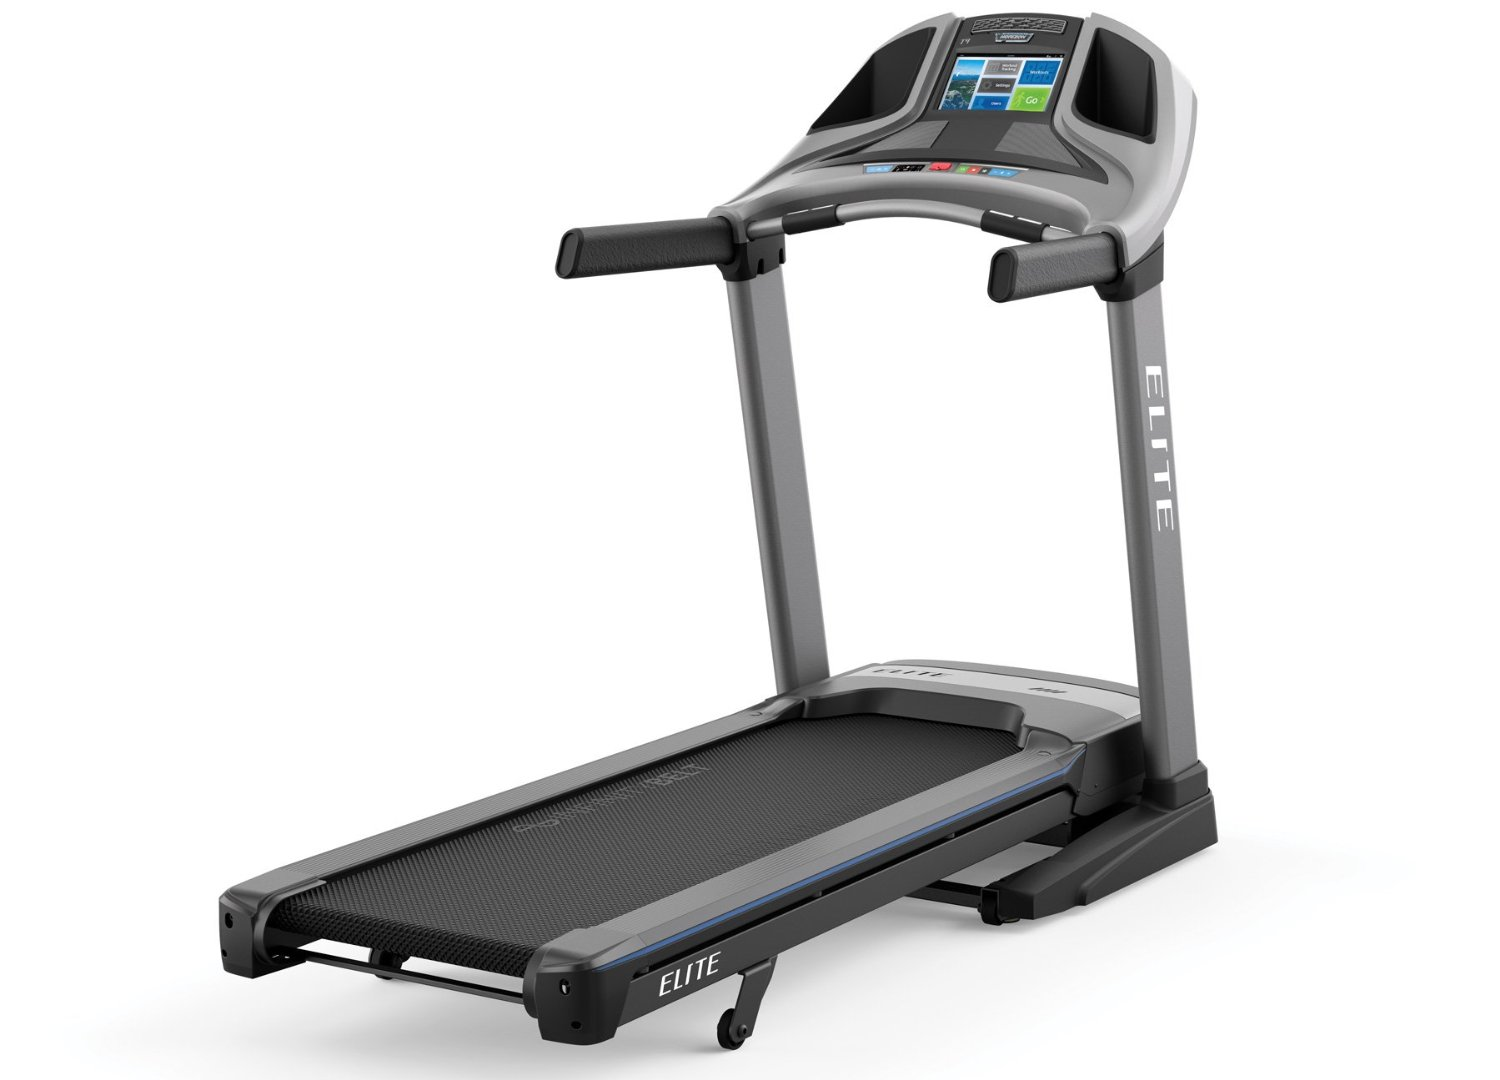 Horizon Elite T9 Treadmill For sale